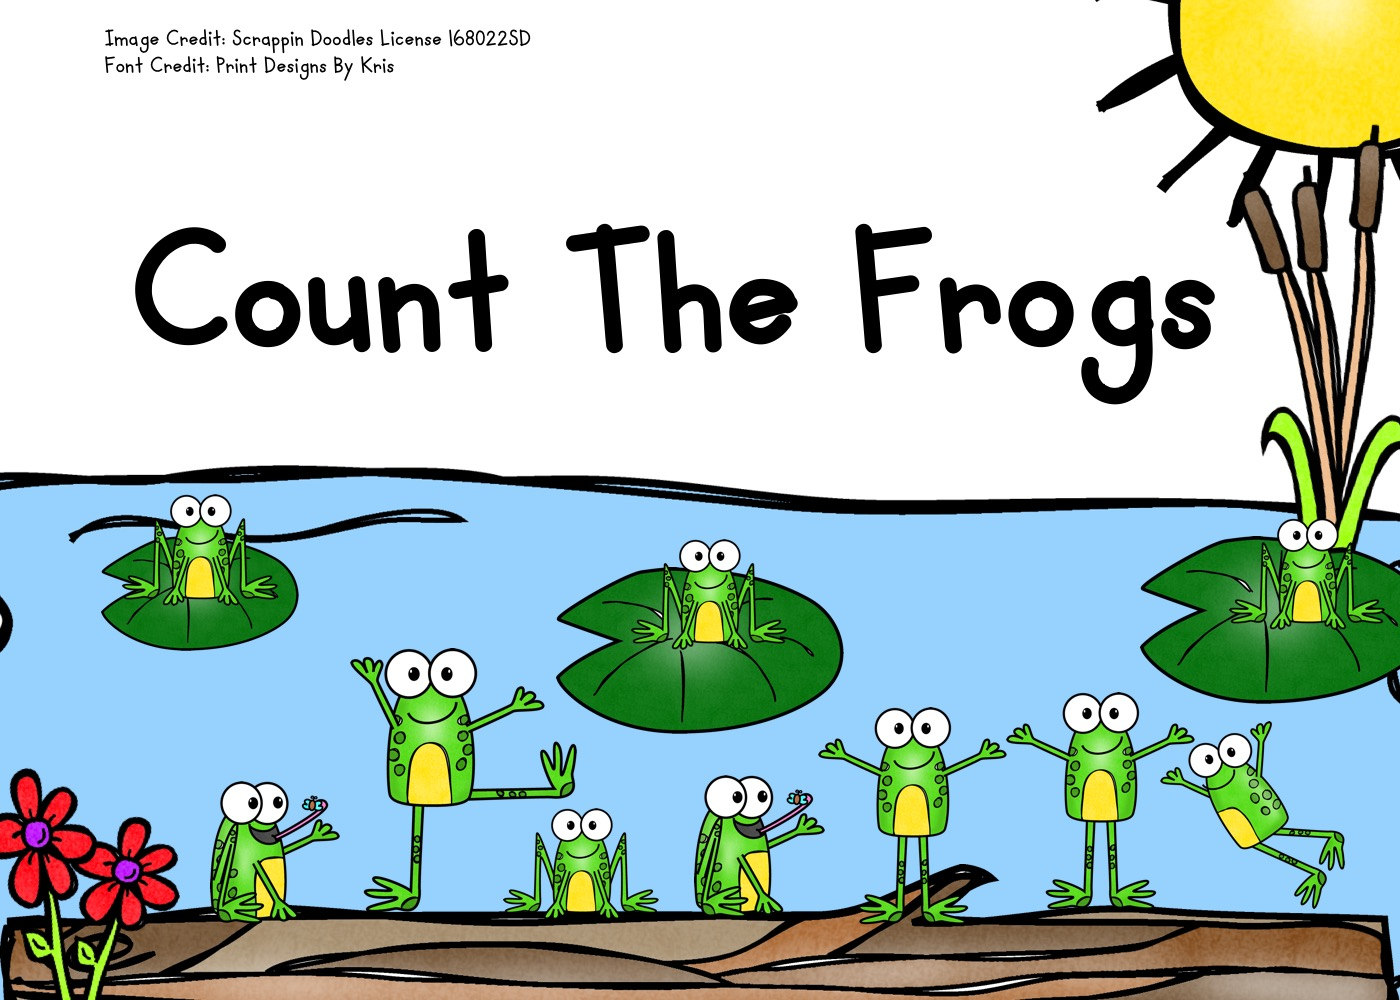 Fun Frog Printables for Preschool and Kindergarten   Animal Themed Spring Games   Hands On Math Homeschool Activities   Kids Classroom Center Ideas and Worksheets #FreePrintableWorksheetsForKids #frogs #counting #clipcards #spring